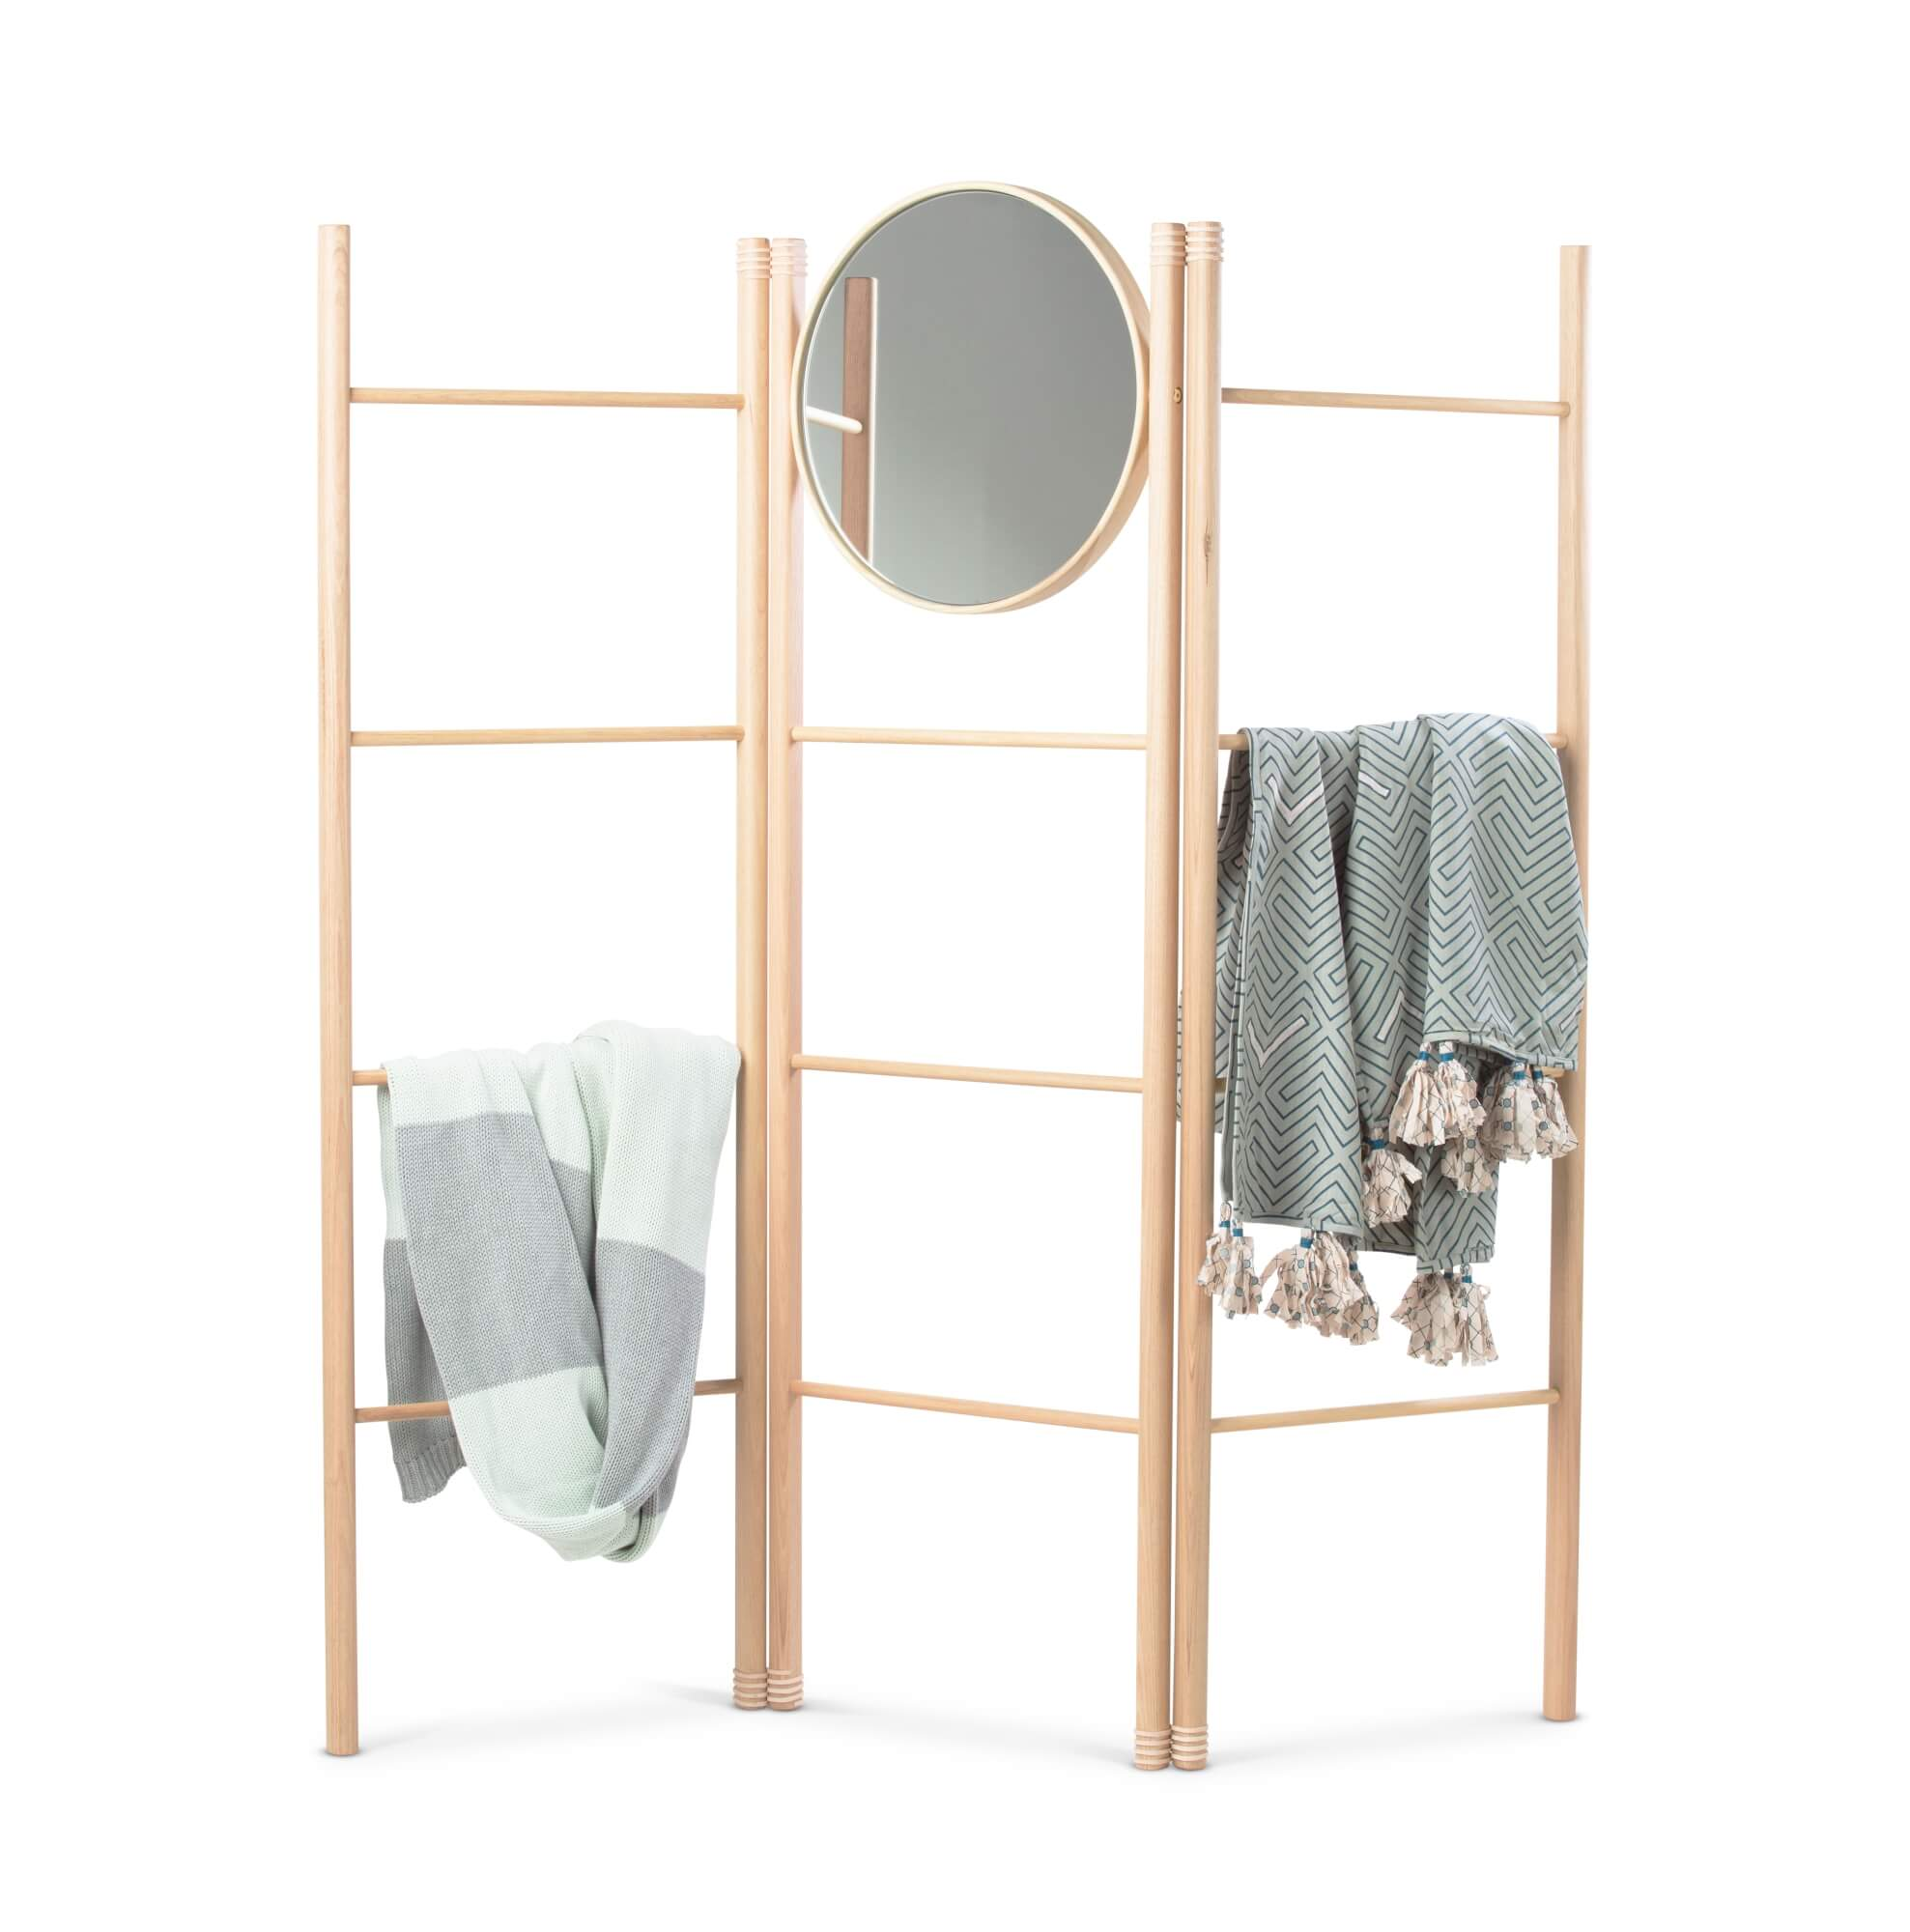 Wooden clothing accessory rack.